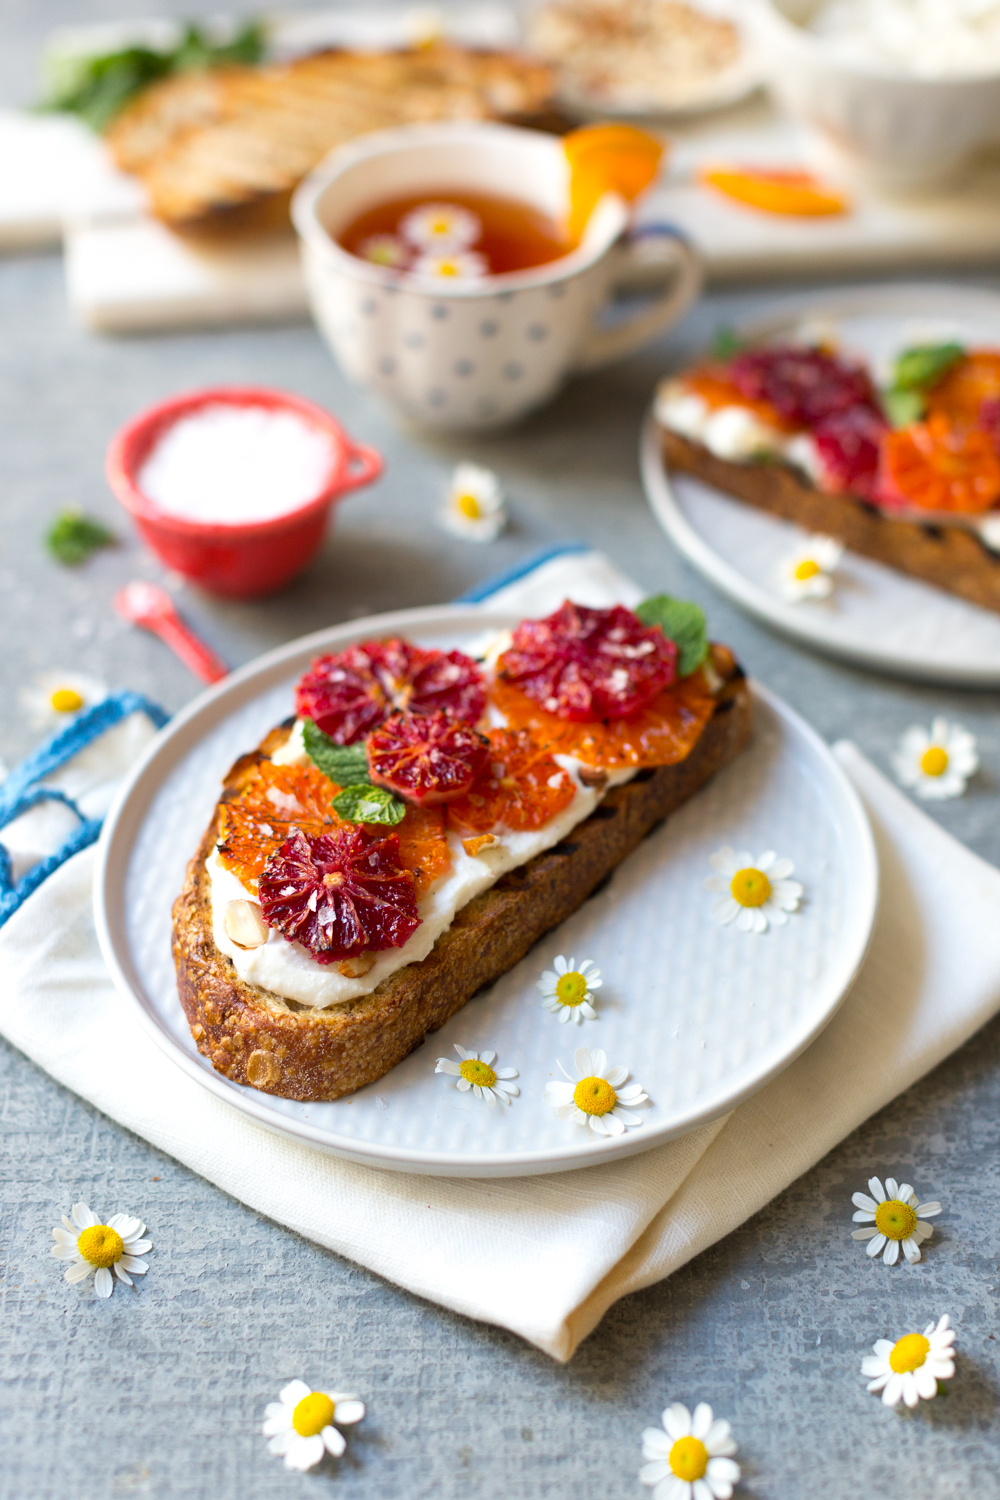 Broiled Orange Whipped Ricotta Toasts from Baking The Goods